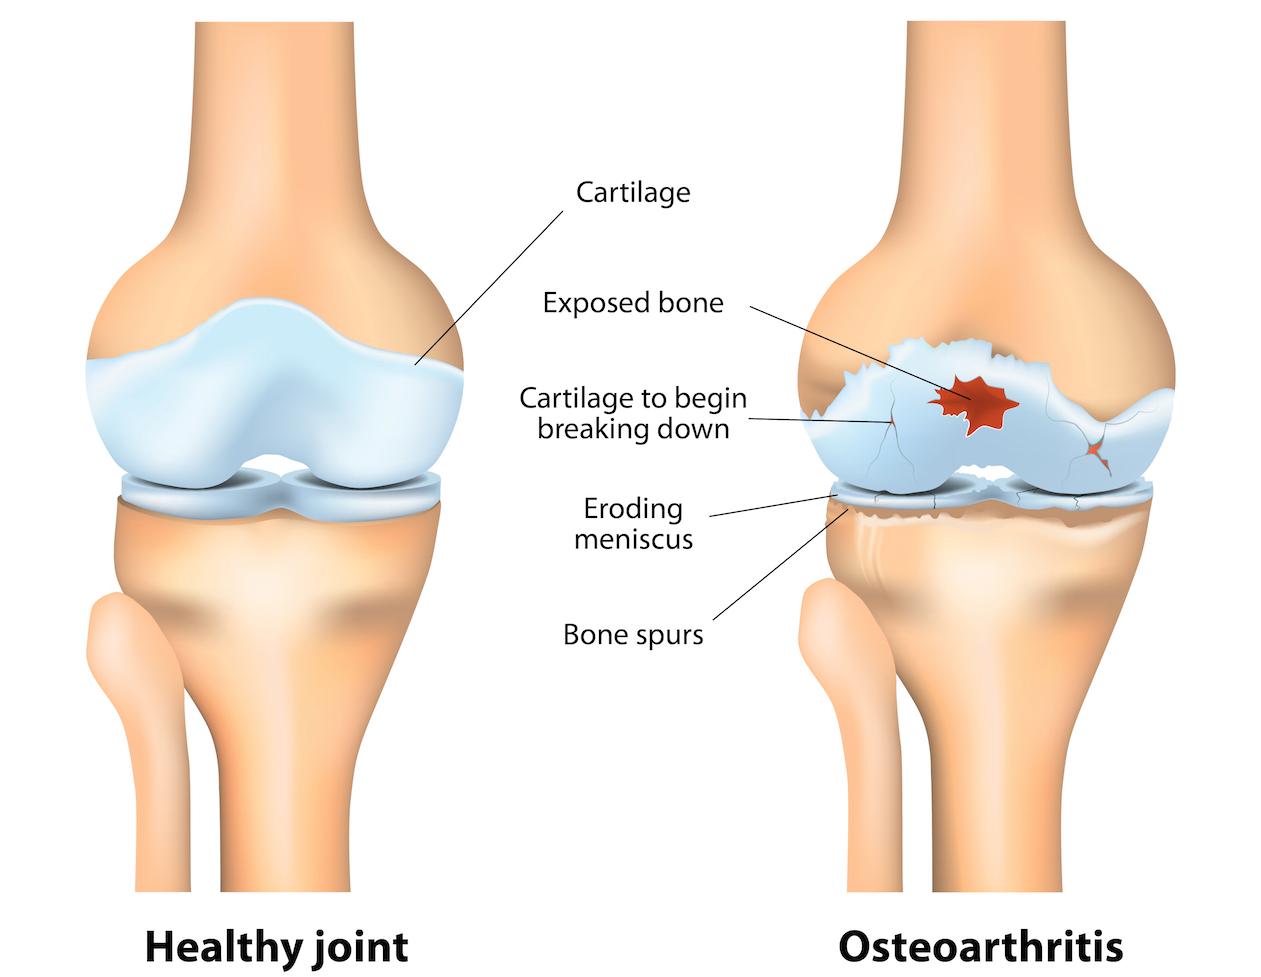 A healthy and an osteoarthritic joint. from www.shutterstock.com